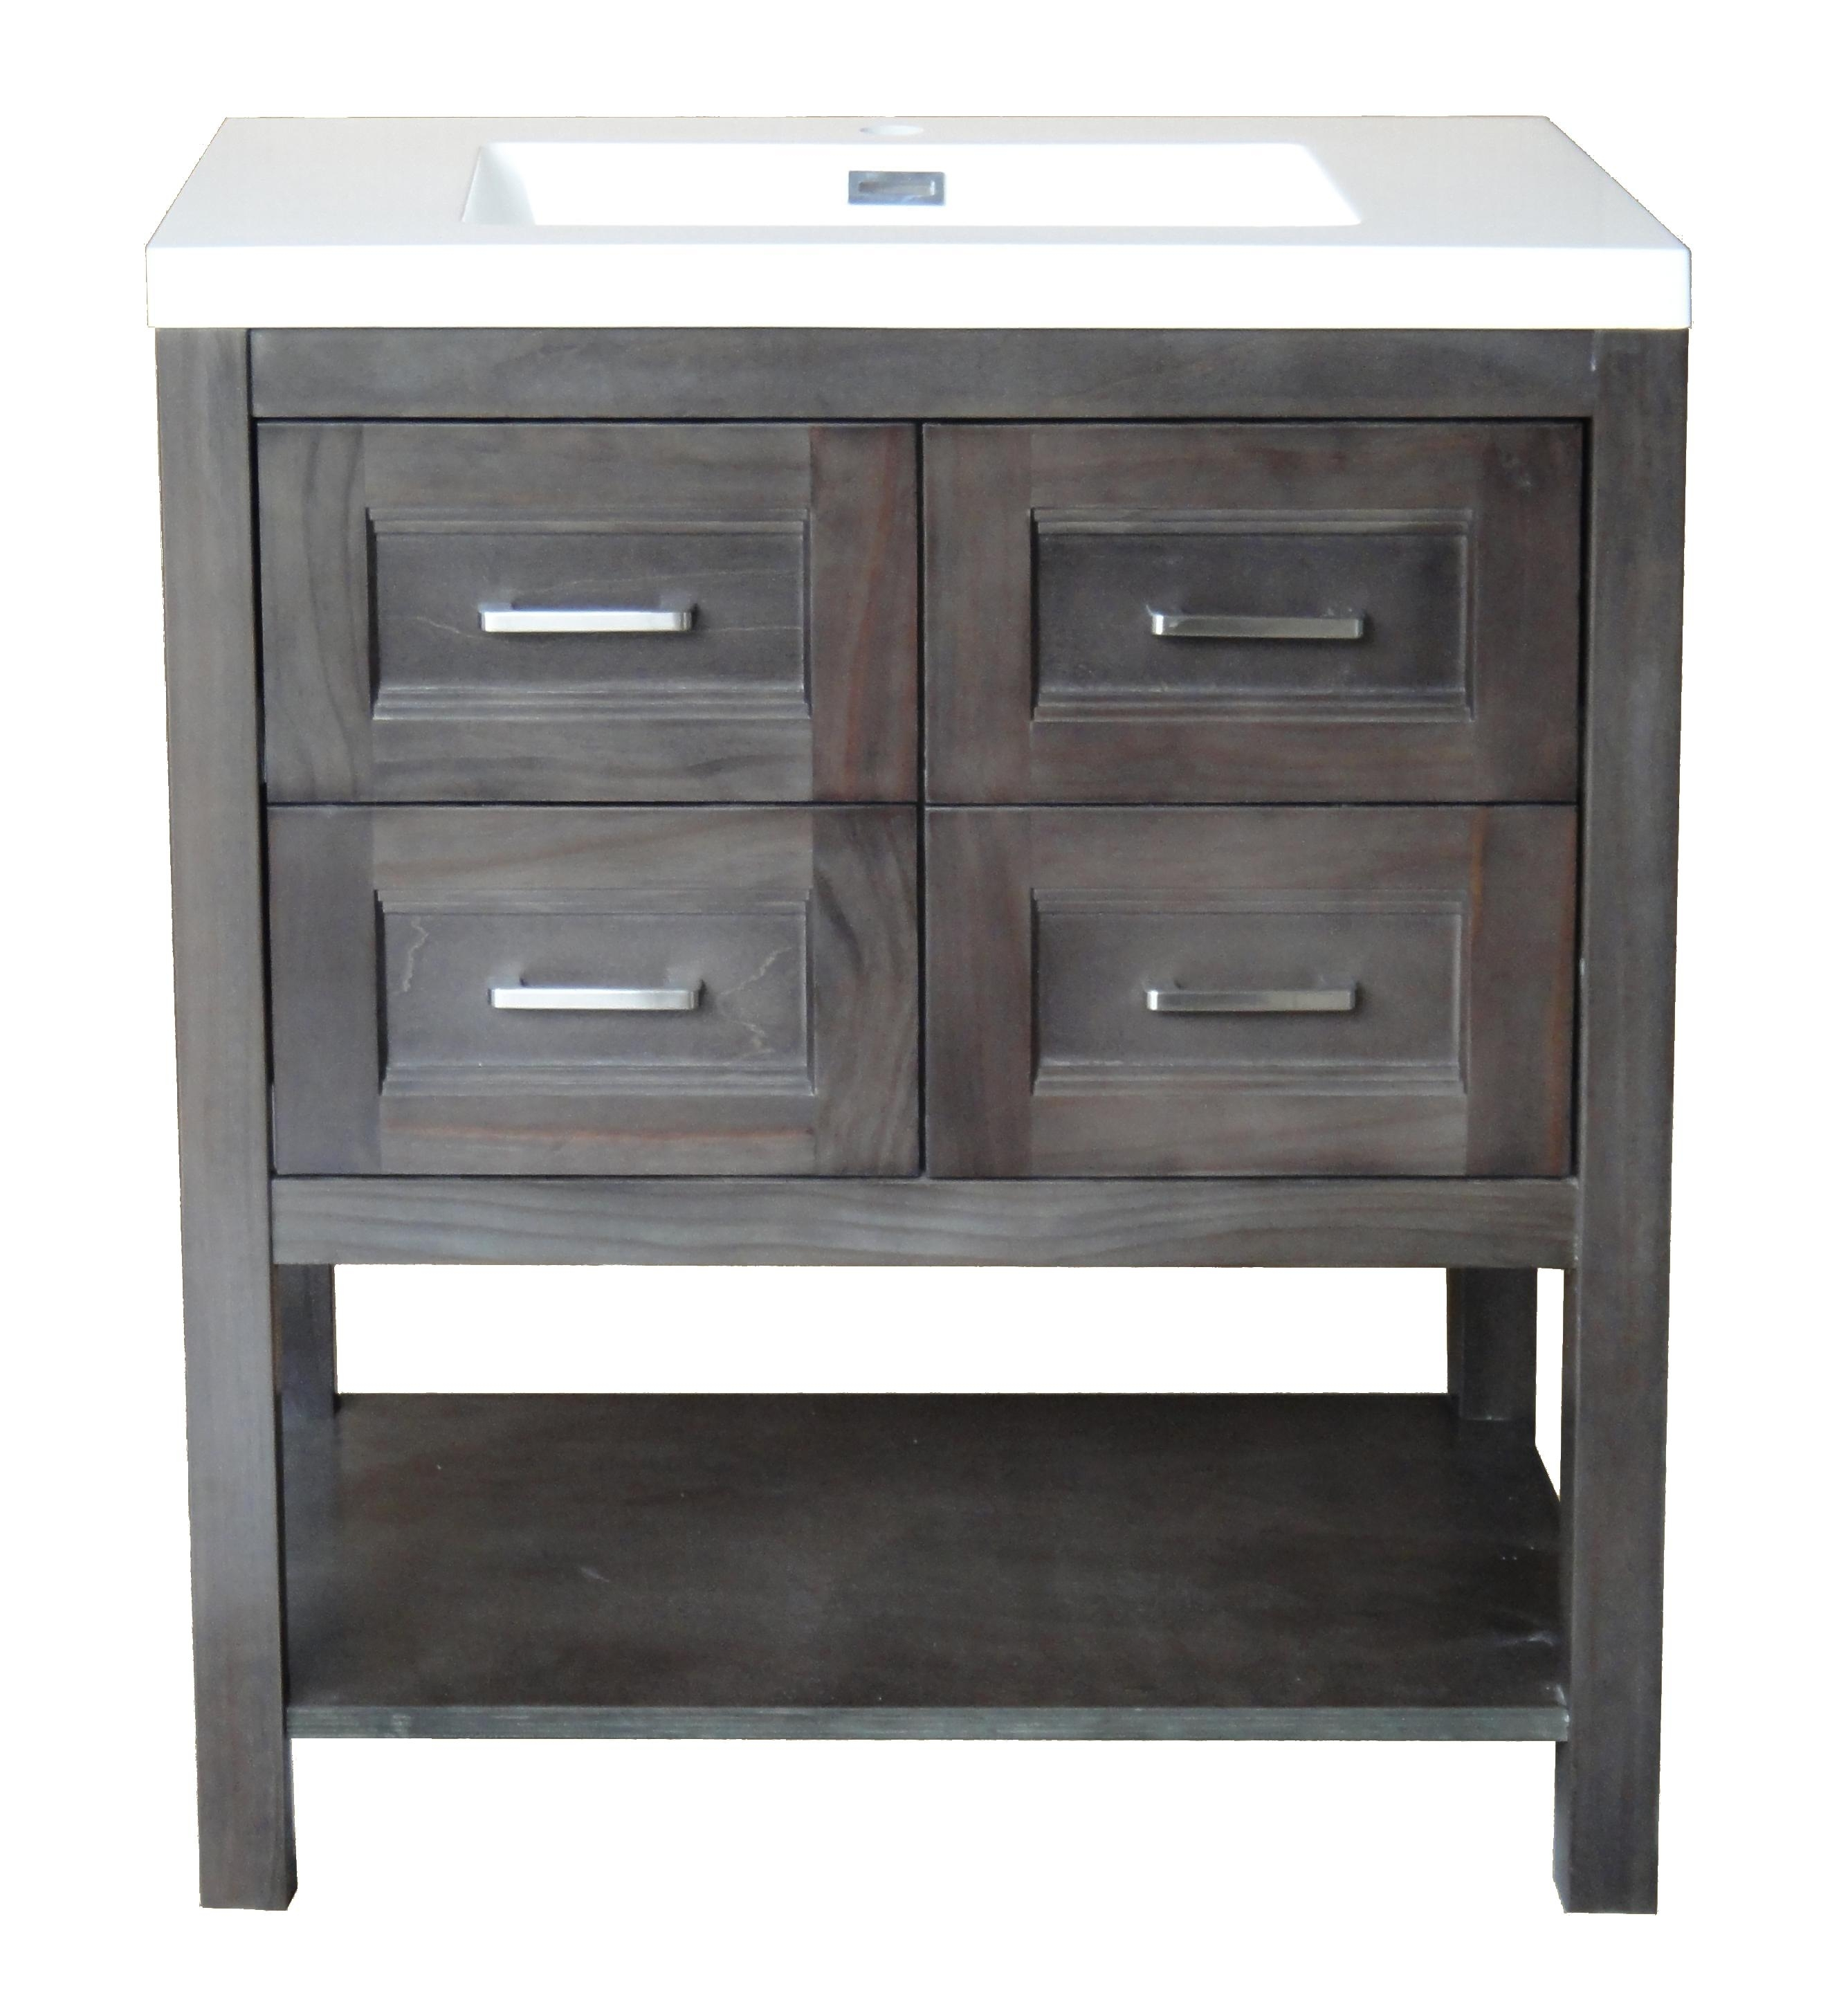 Osage Cabinet Cnv3019-4D-M8 30-Inch Gray 4-Drawer Console Vanity throughout Charcoal Finish 4-Door Jumbo Sideboards (Image 17 of 30)